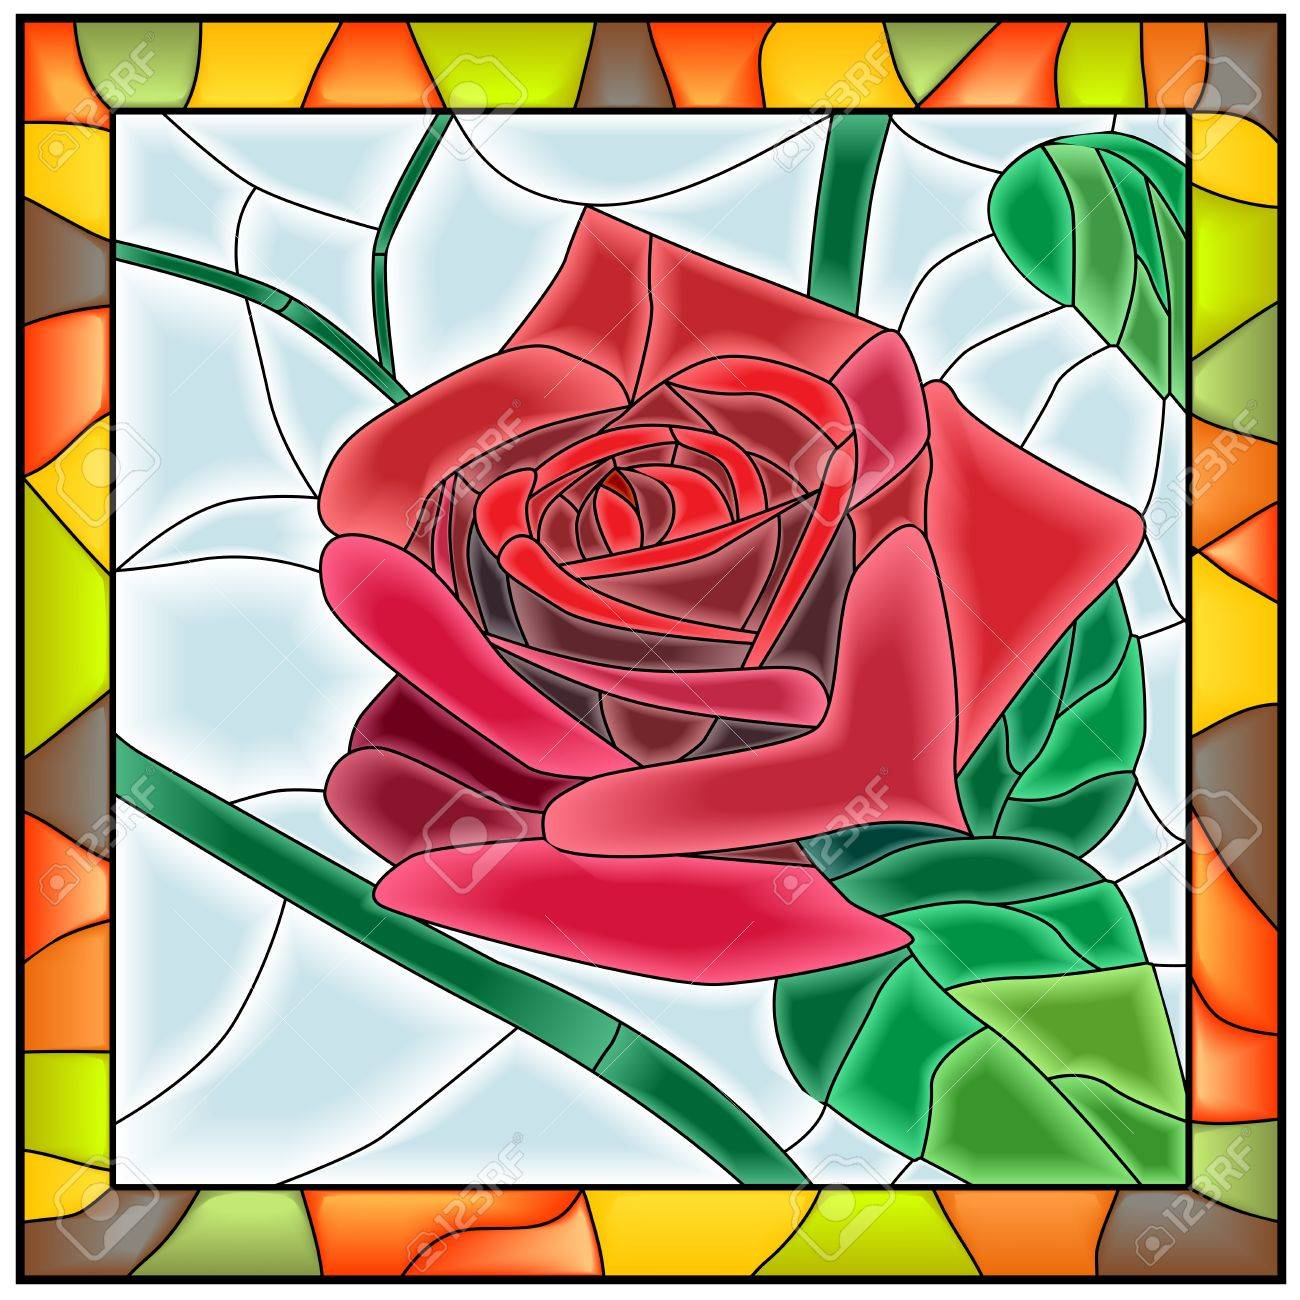 Vector Illustration Of Flower Red Rose In Stained Glass Window With Frame Stock